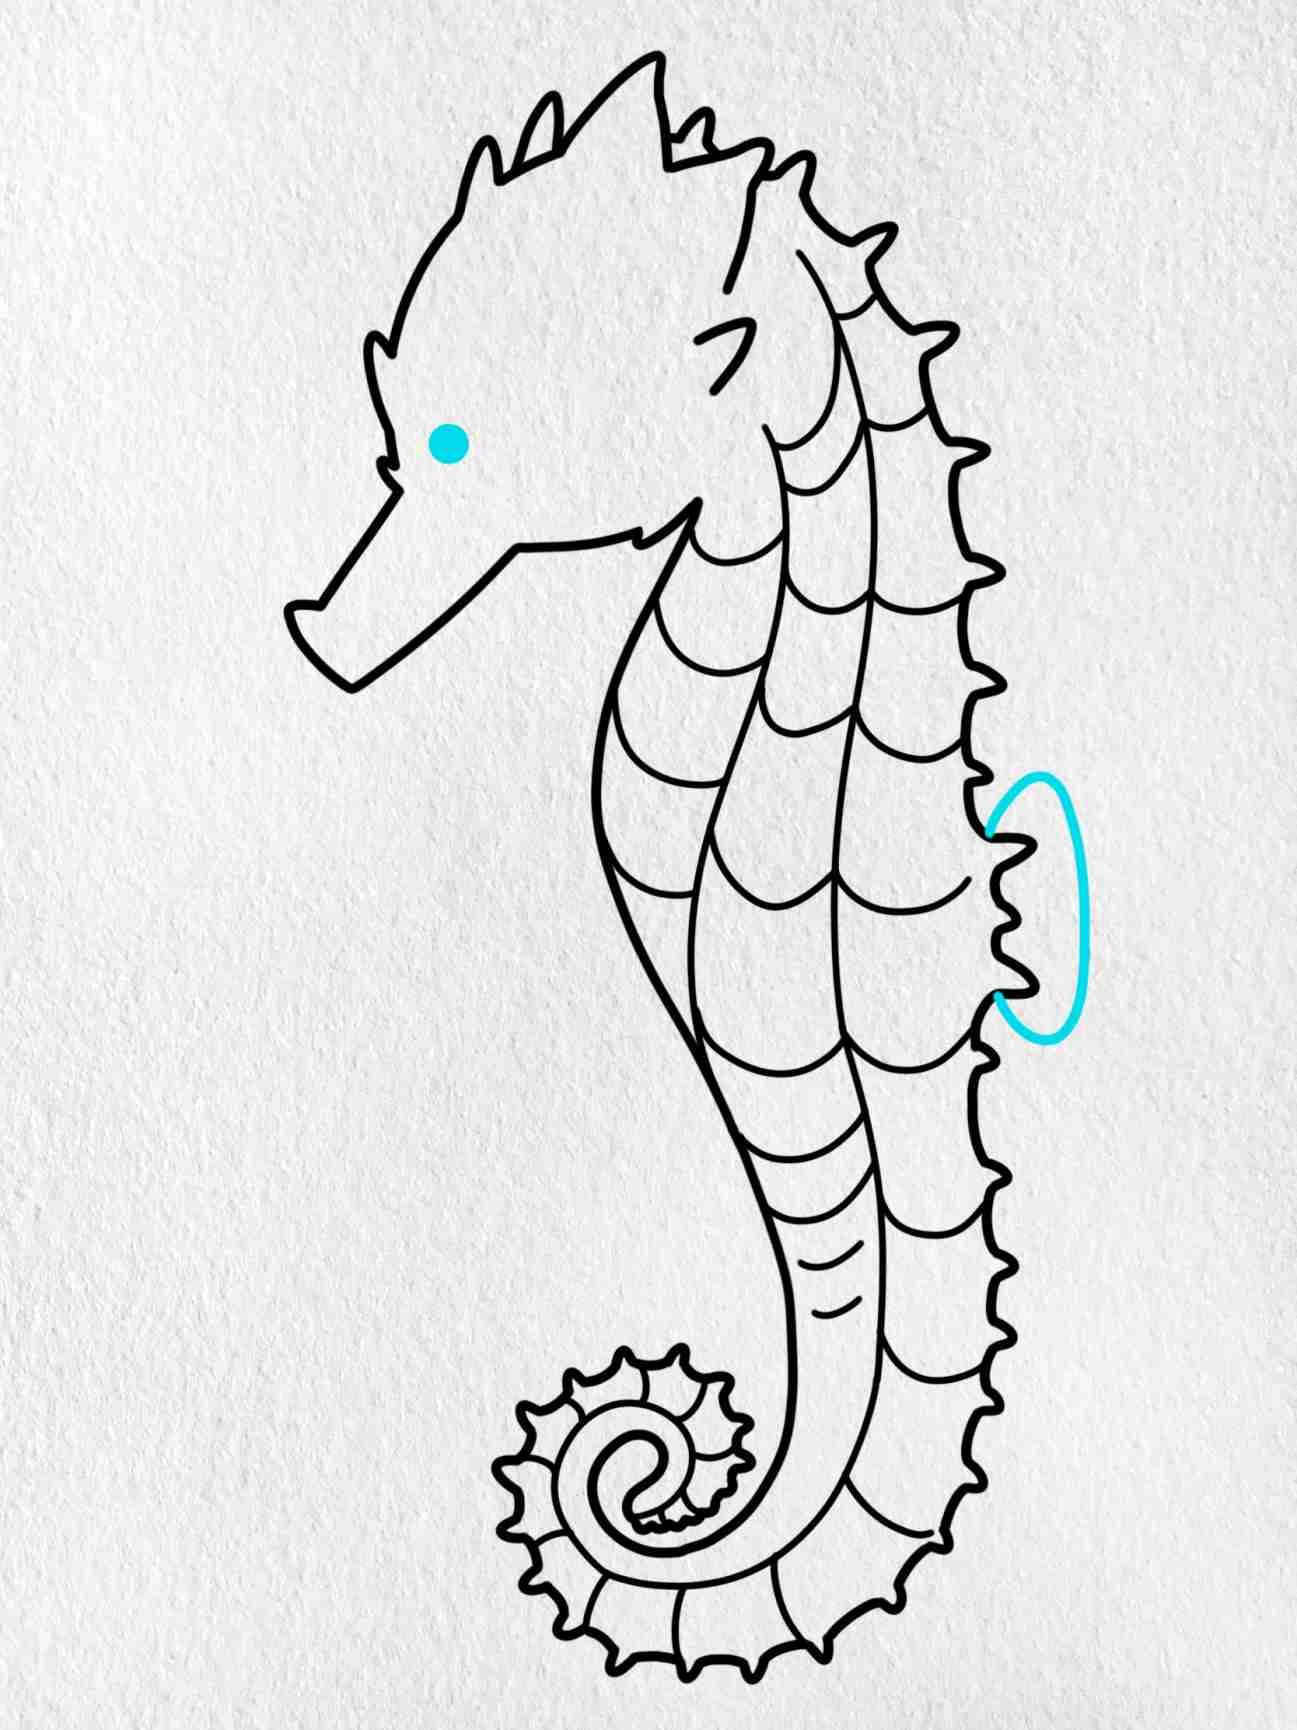 How To Draw A Seahorse: Step 8